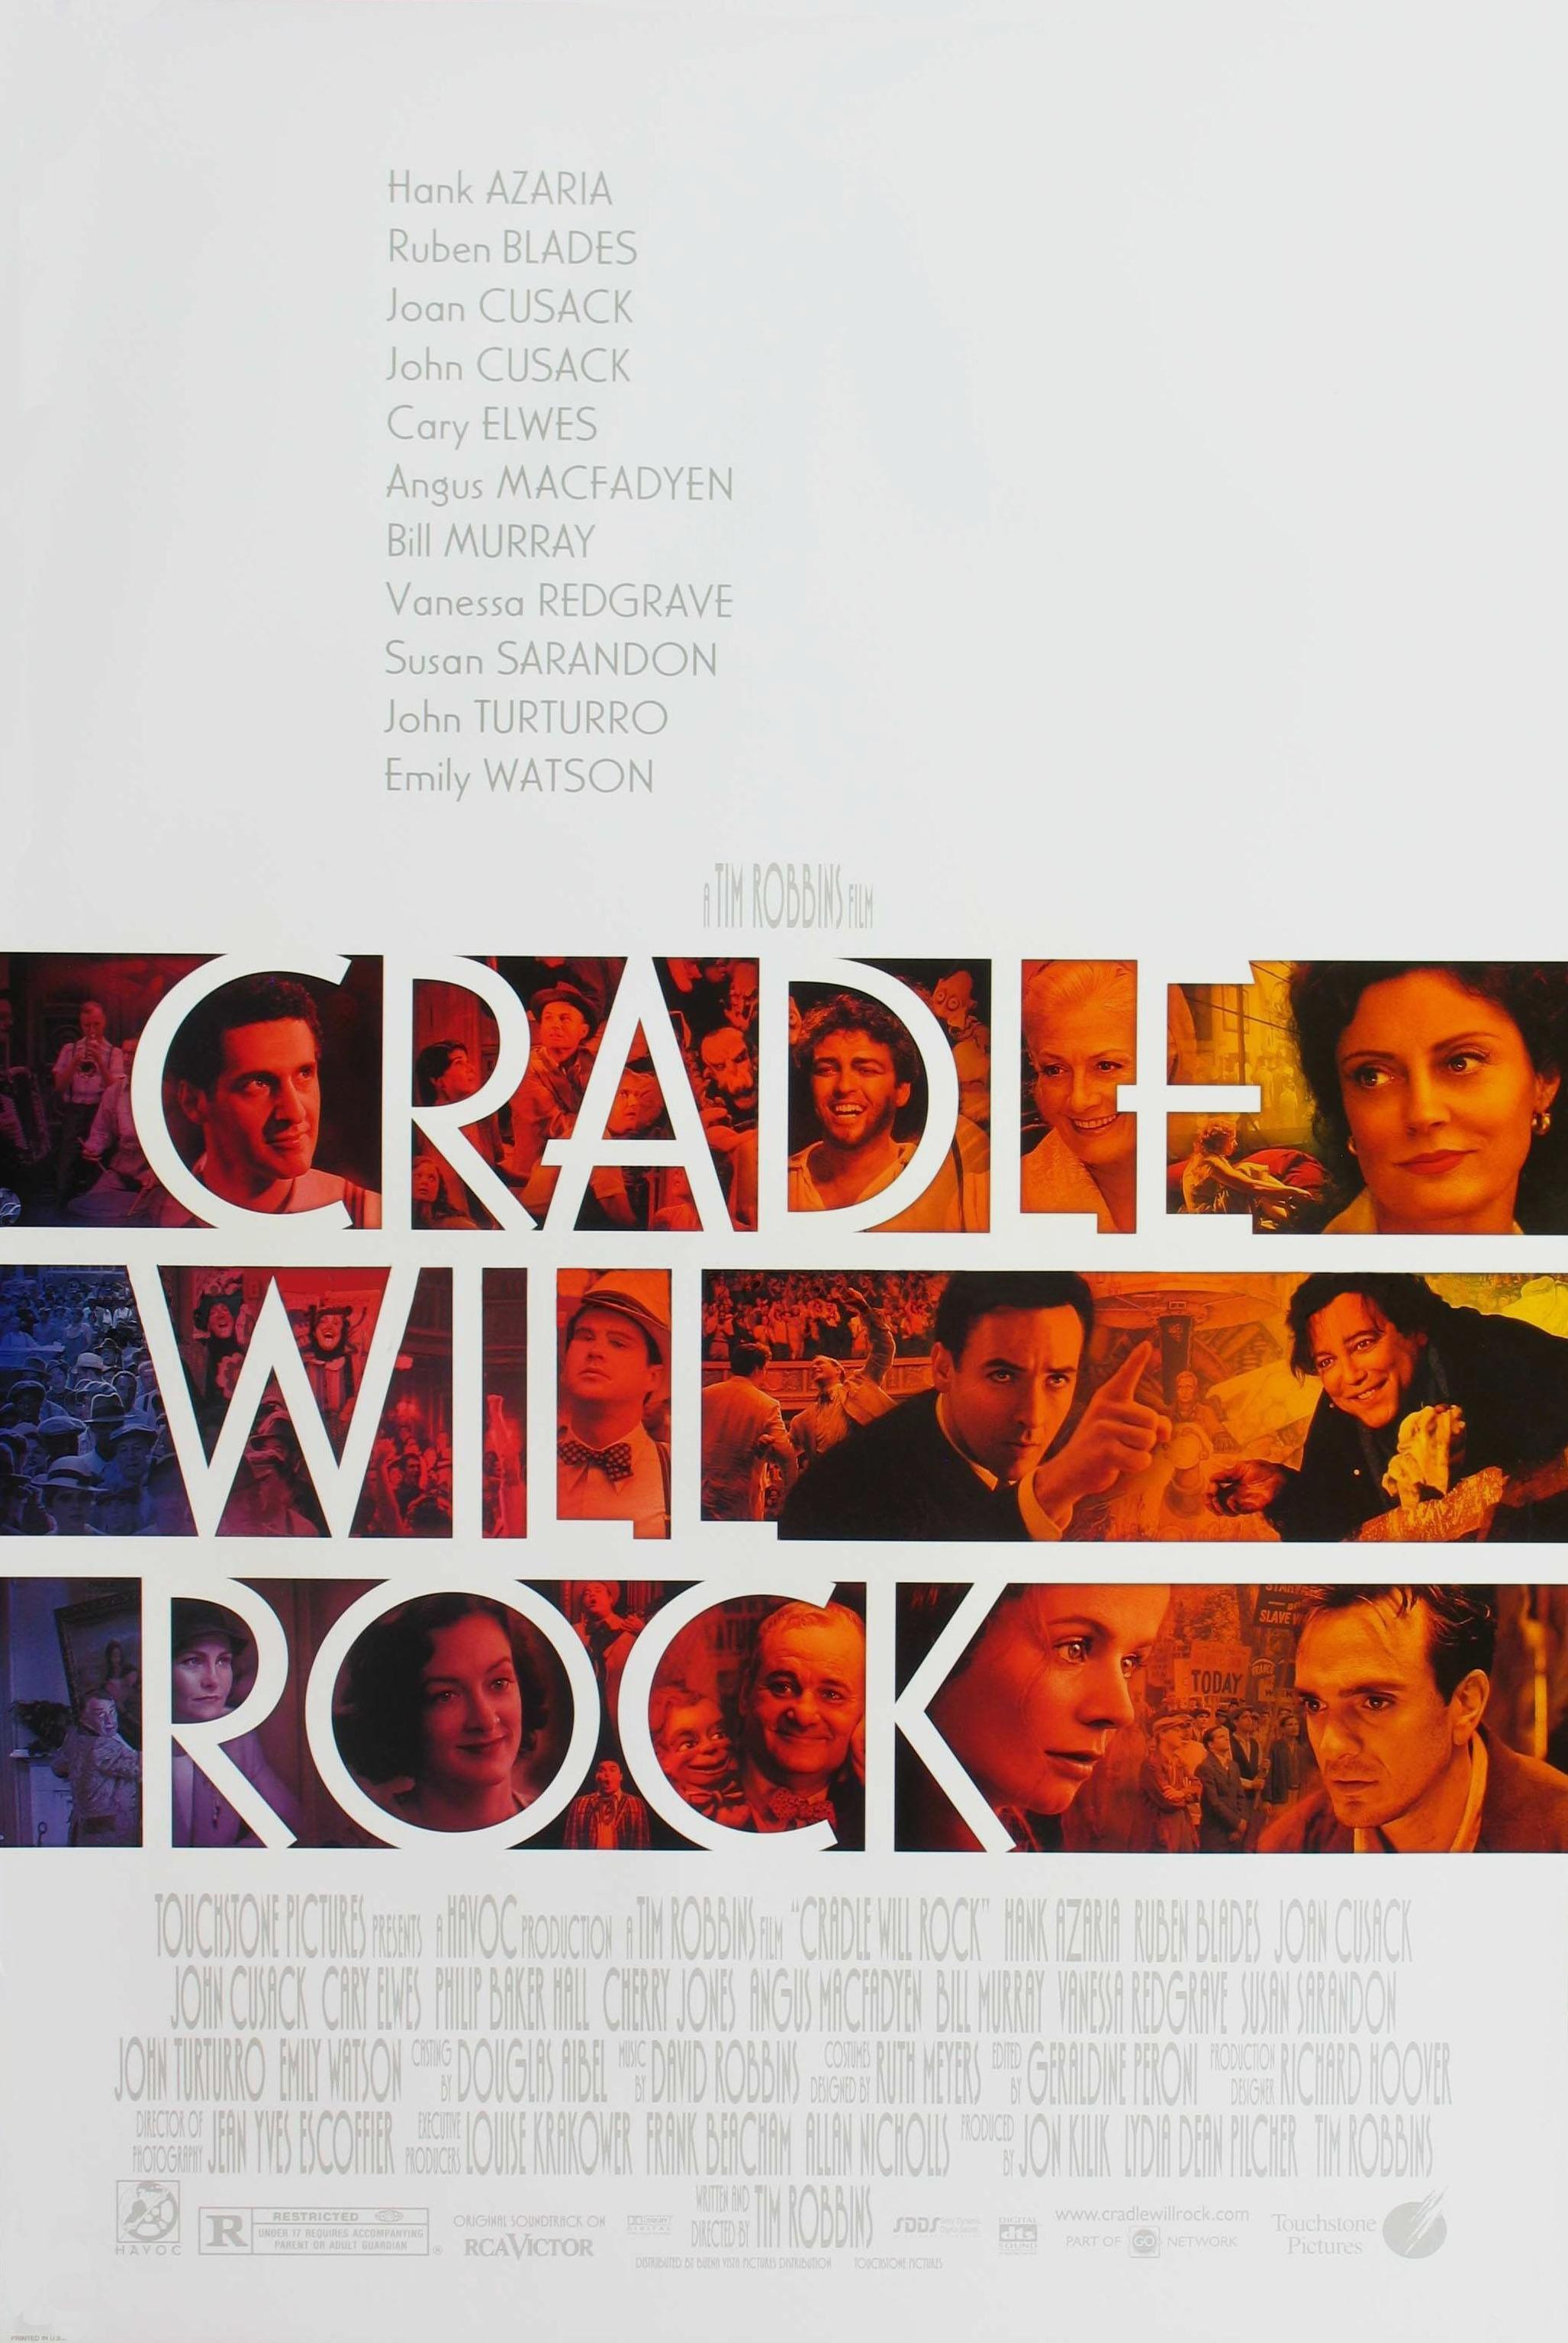 an analysis of the film cradle will rock by tim robbins